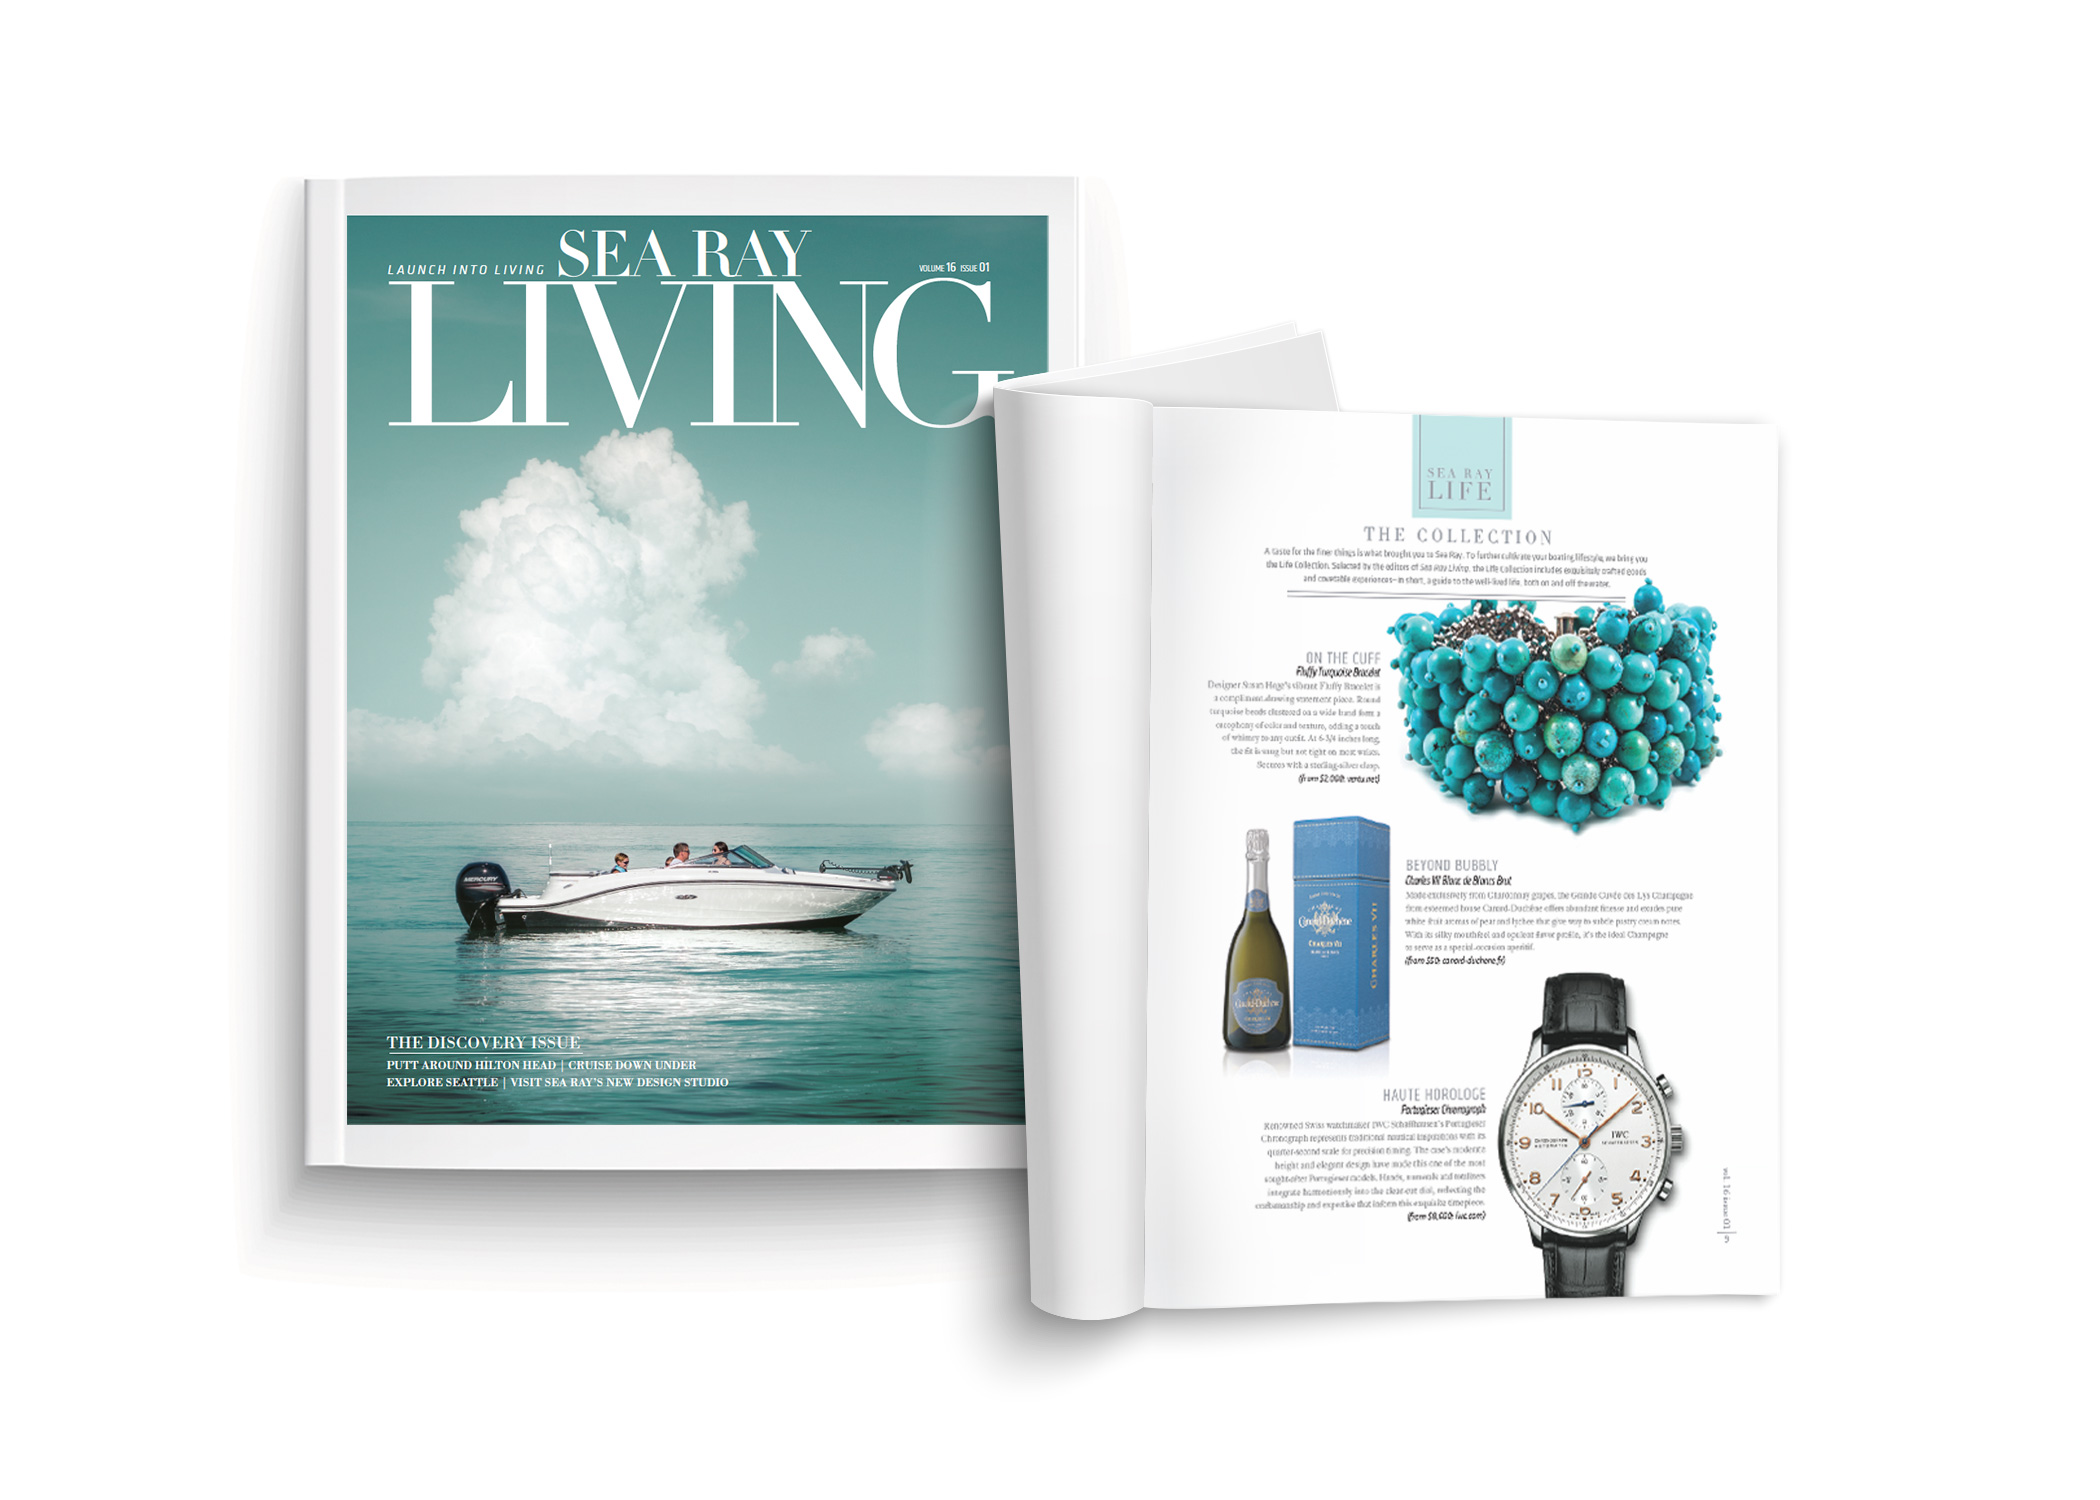 Sea Ray living magazine cover featuring boat on open waters and one open magazine spread